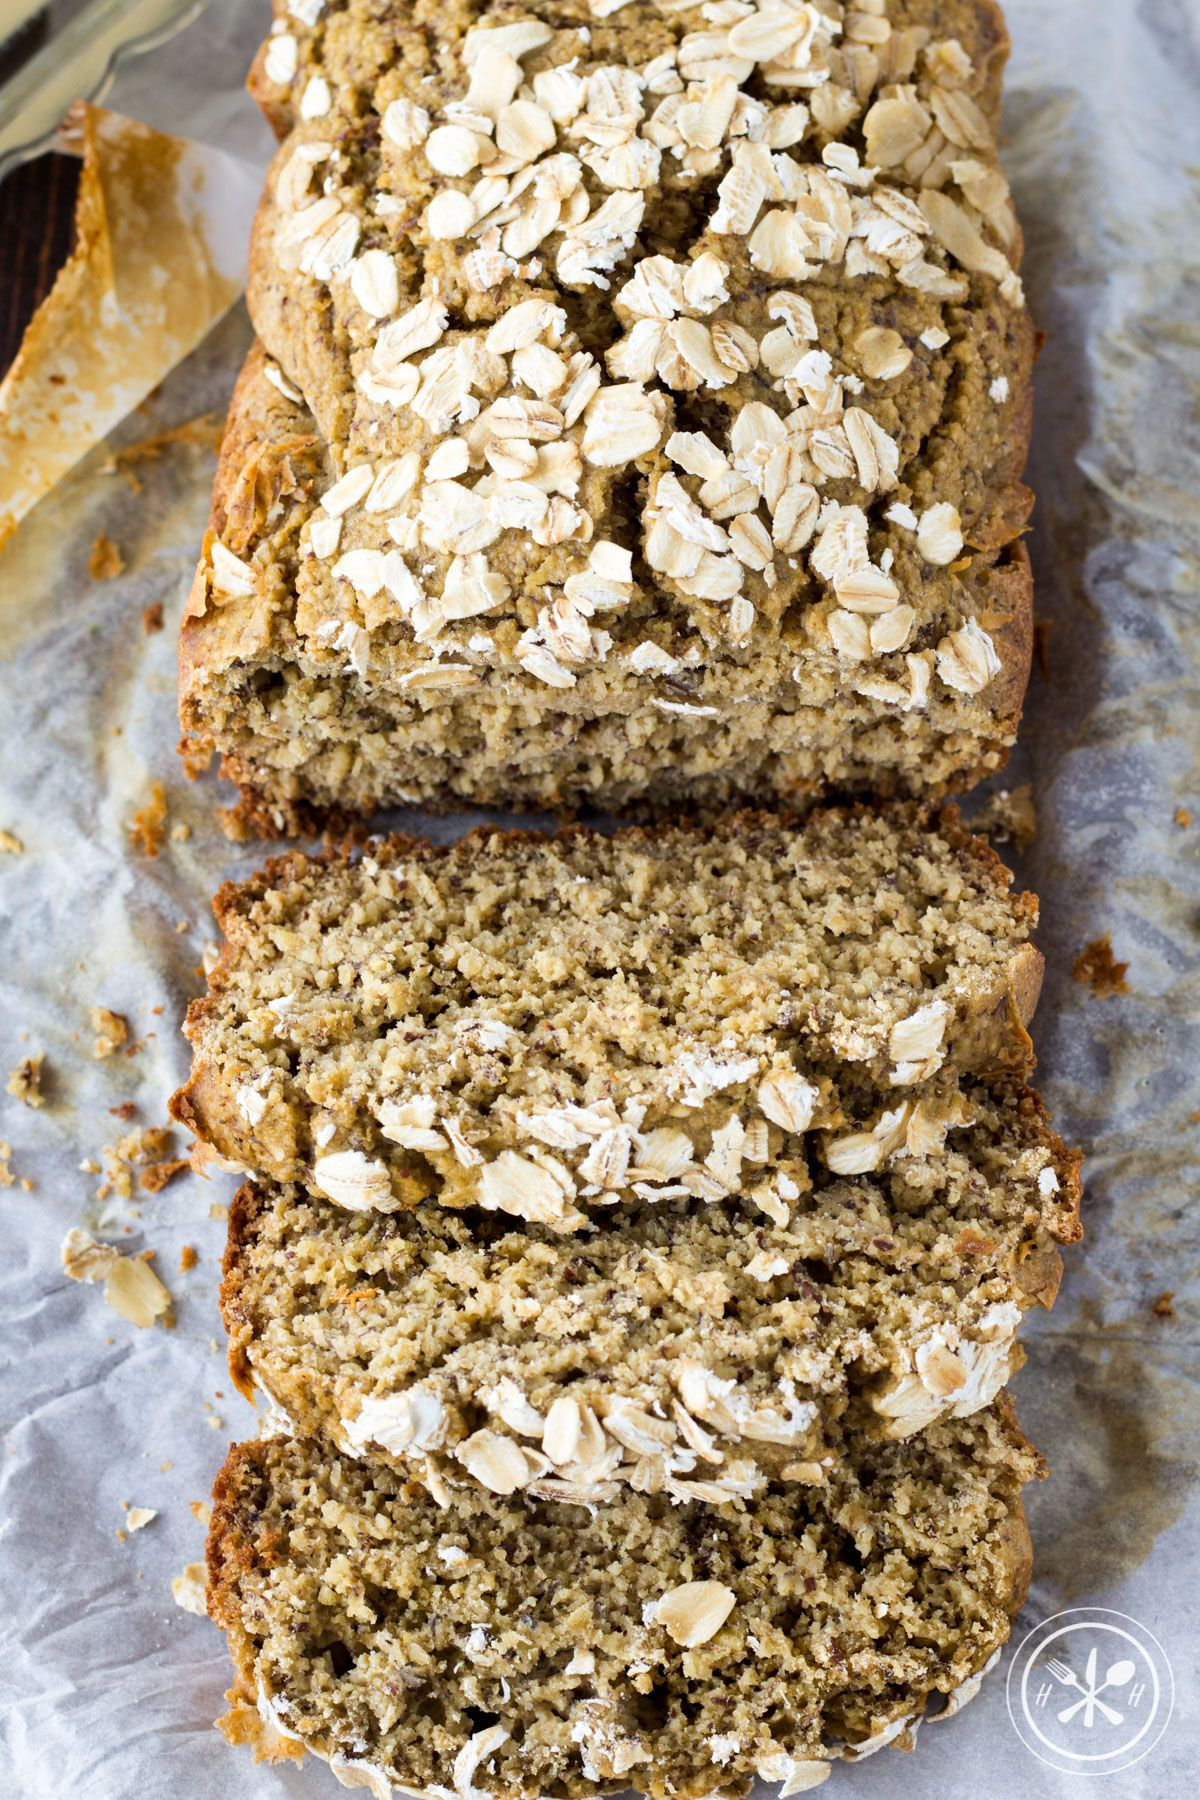 This Gluten Free Oat Flour Bread Is Made With Just A Few Simple Ingredients In Only One Bowl No Oat Flour Gluten Free Oat Bread Oat Flour Bread Machine Recipe